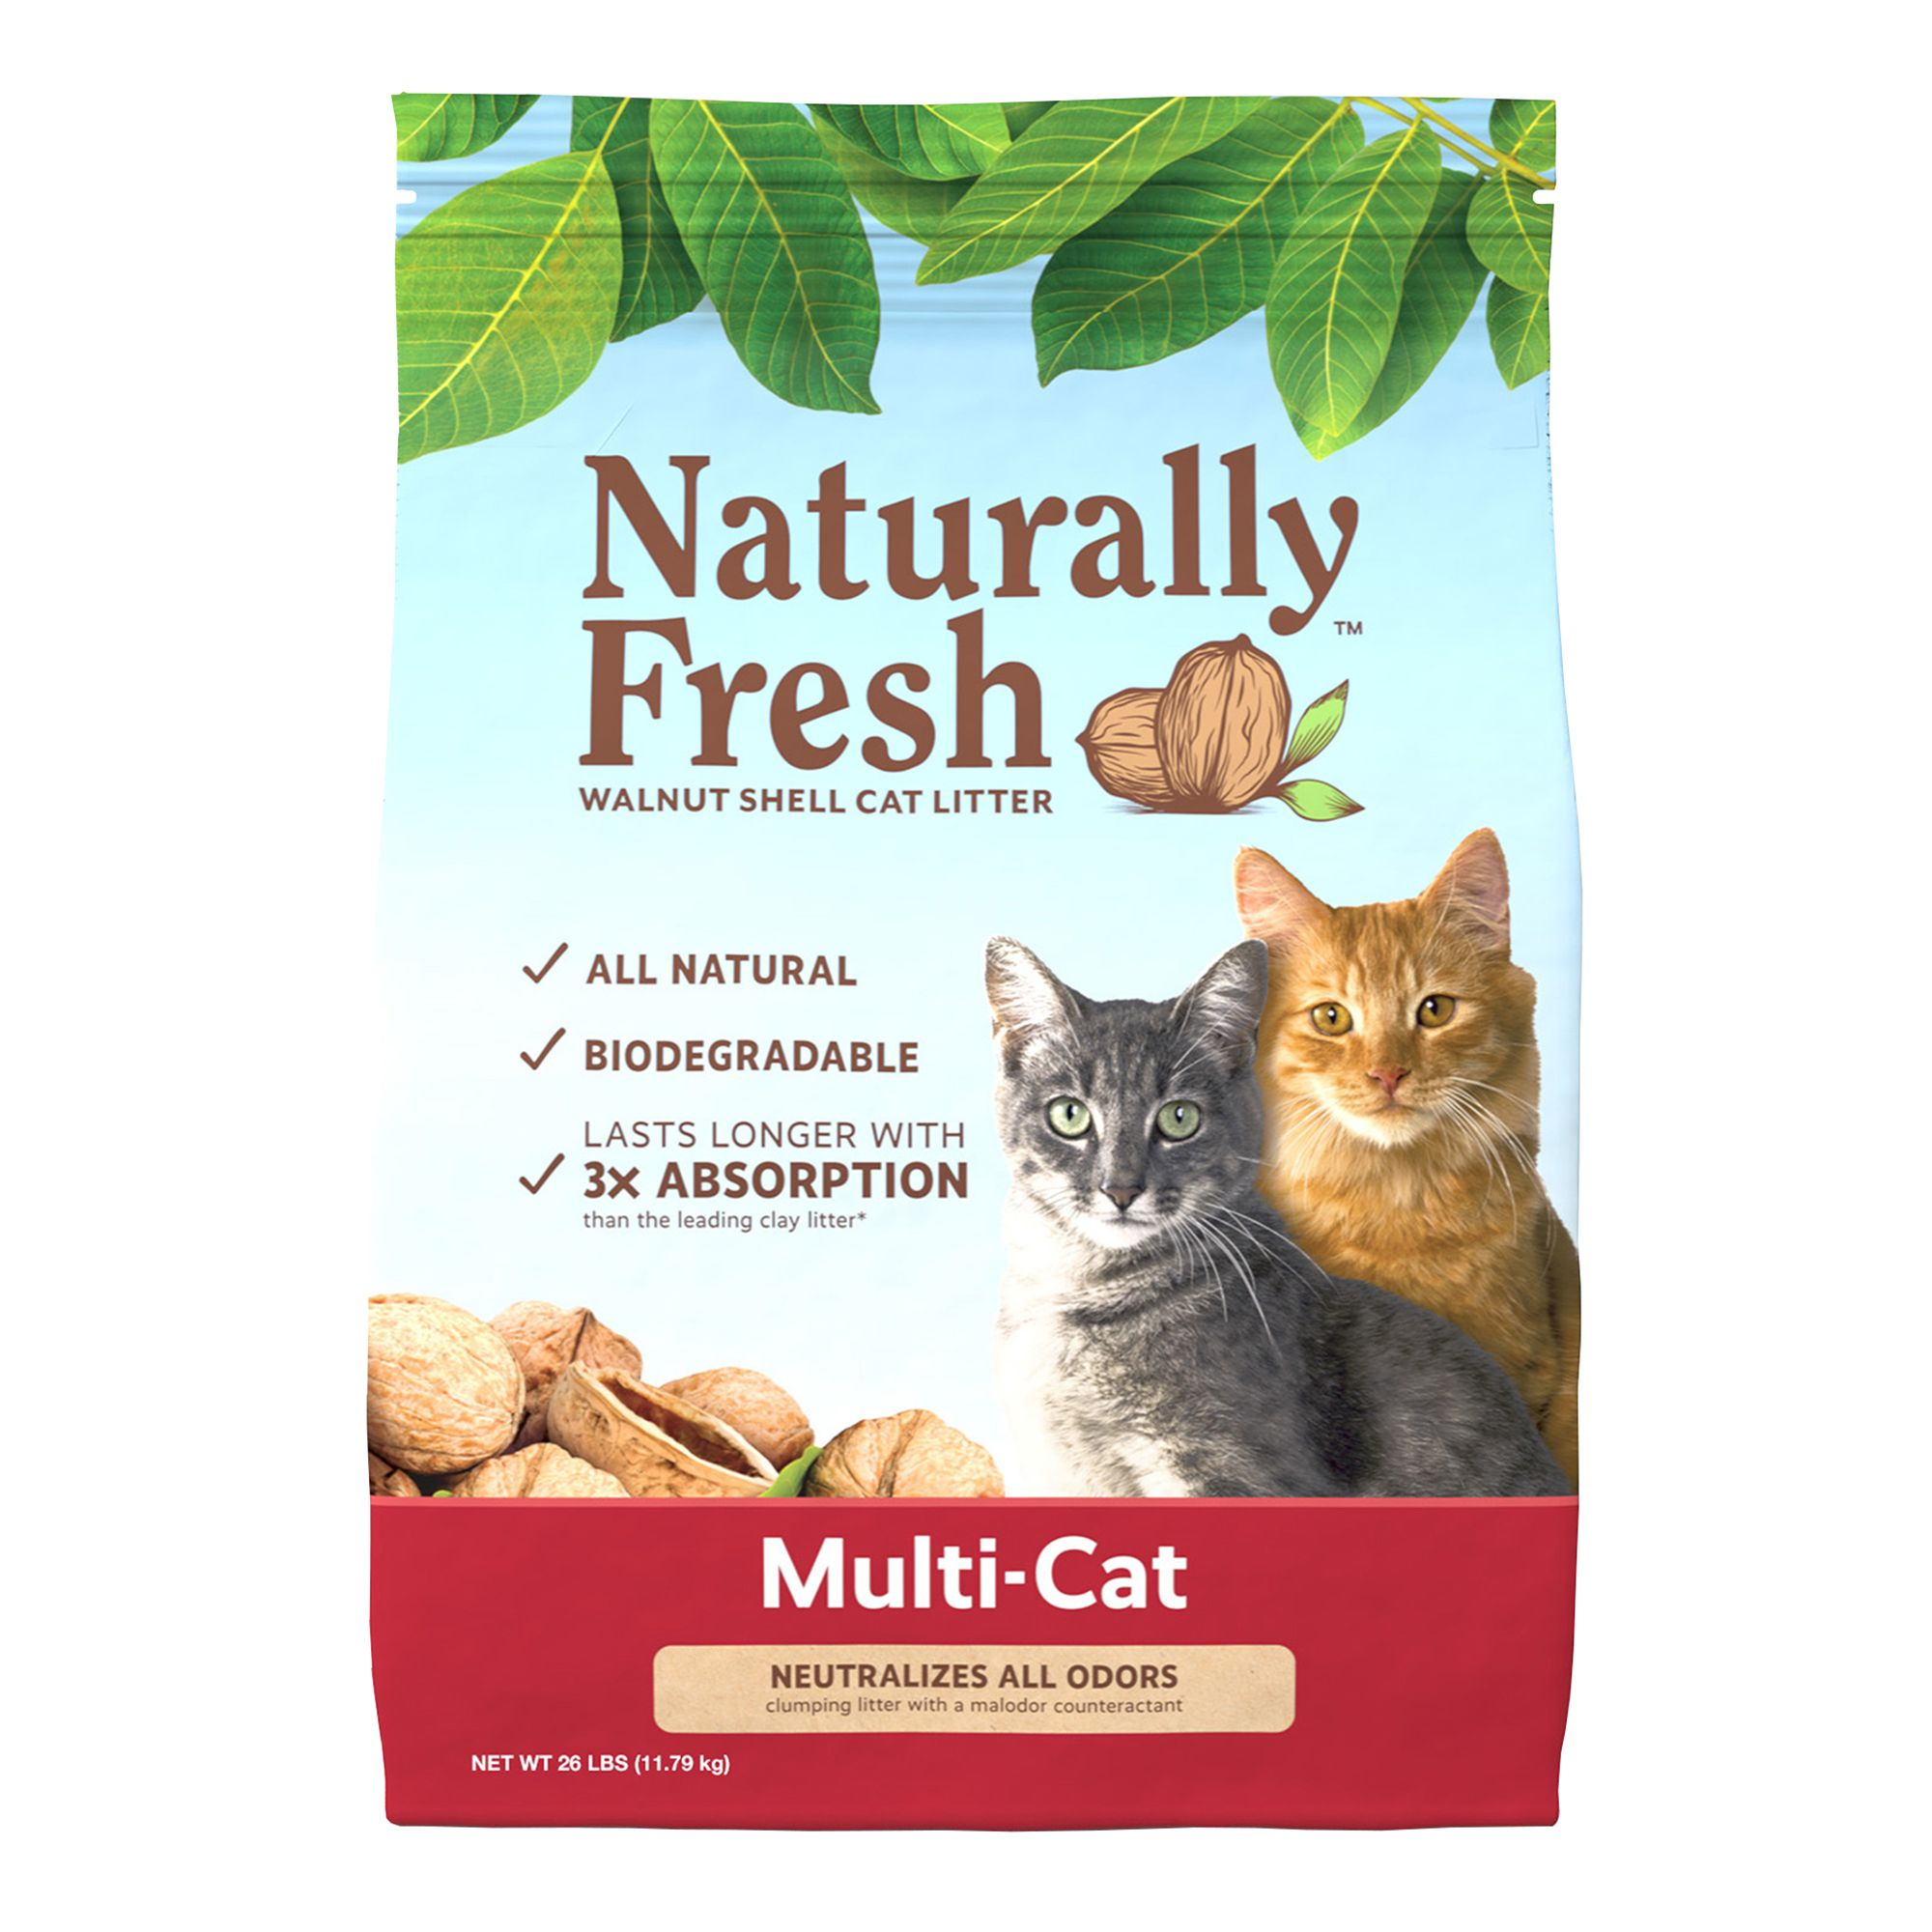 859610008605 Upc Naturally Fresh Multi Cat Litter 26 Lbs